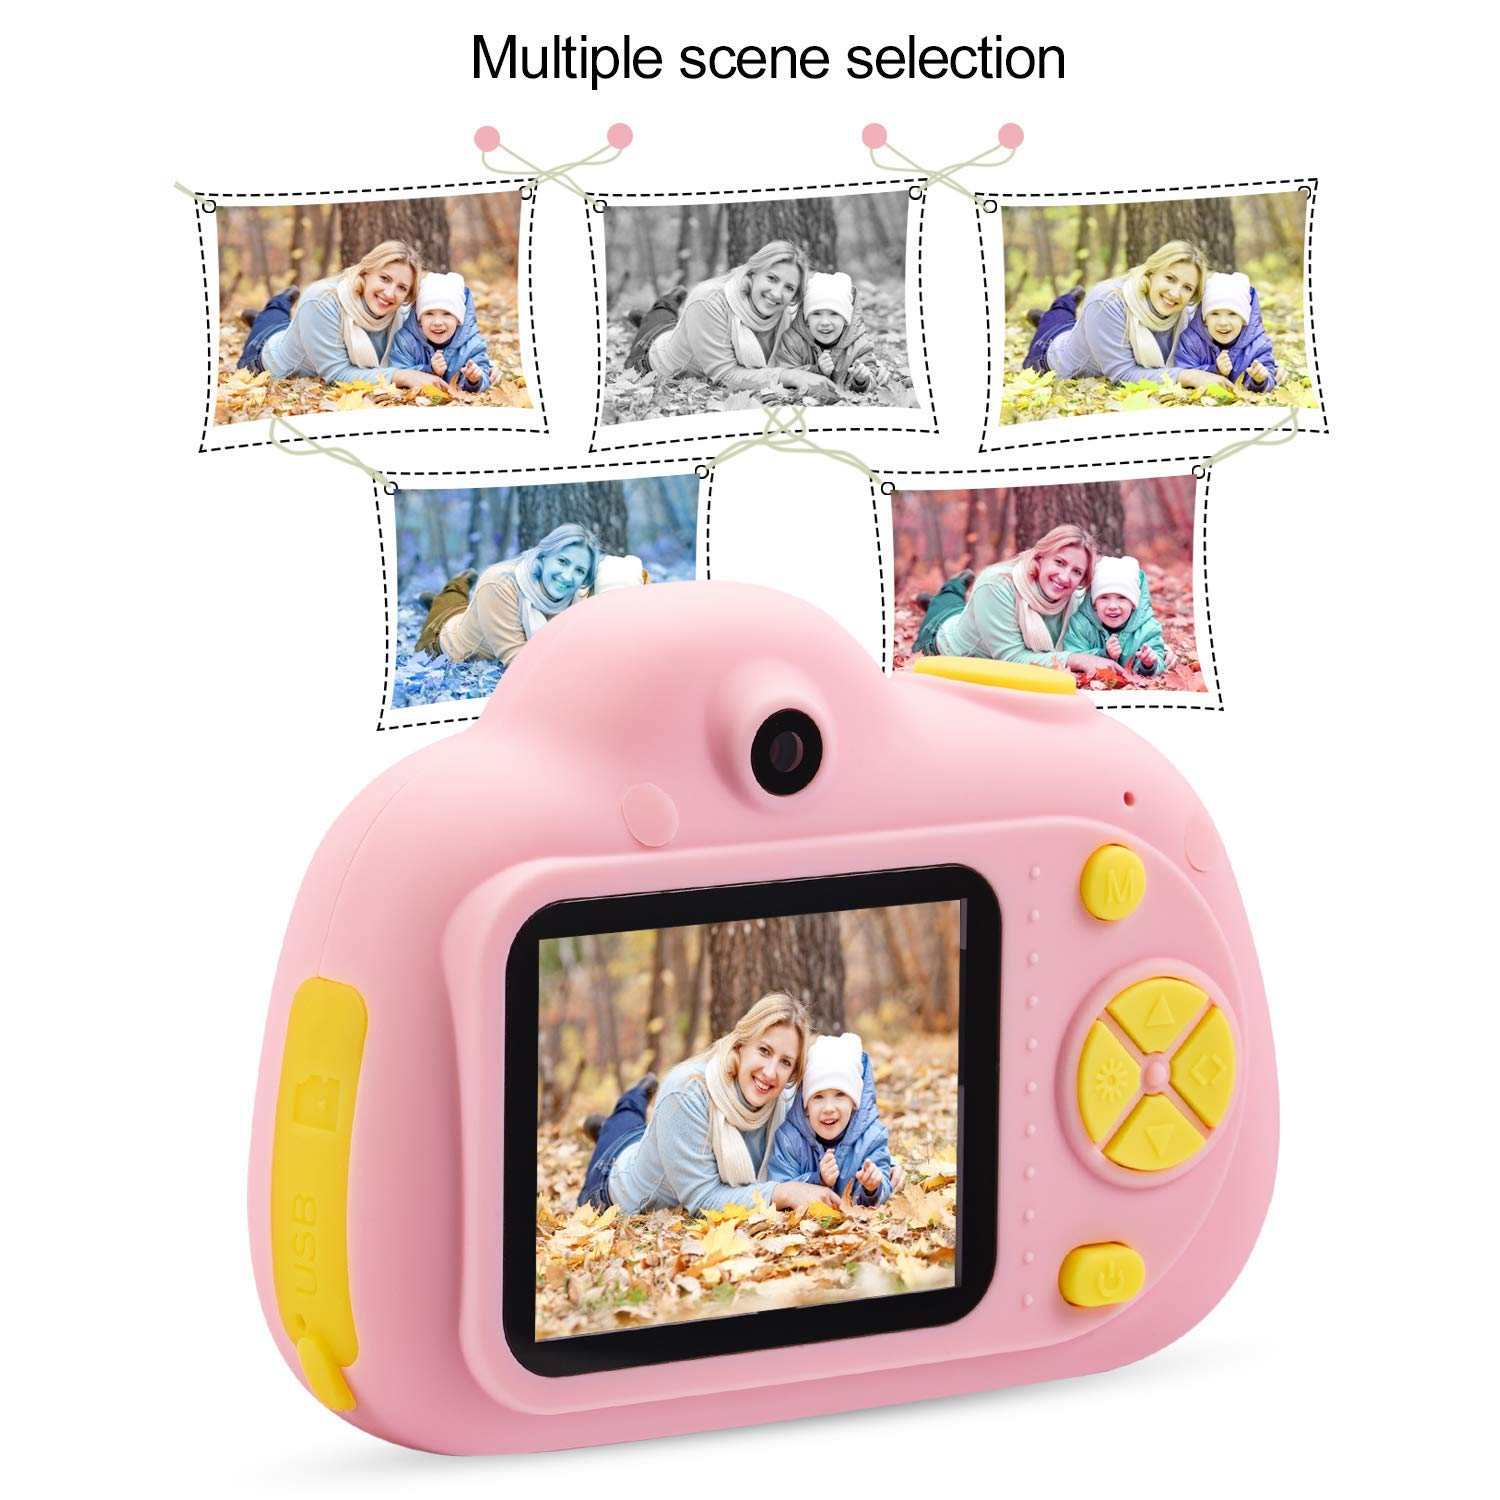 Kids Camera, Dual Cameras 8MP Rechargeable 1080p HD Kids Video Cameras Shockproof Kids Digital Cameras - Best Gift for 4-10 Years Old Girls Boys Party Outdoor Play 16GB TF Card Included (Pink) by Egoelife (Image #5)